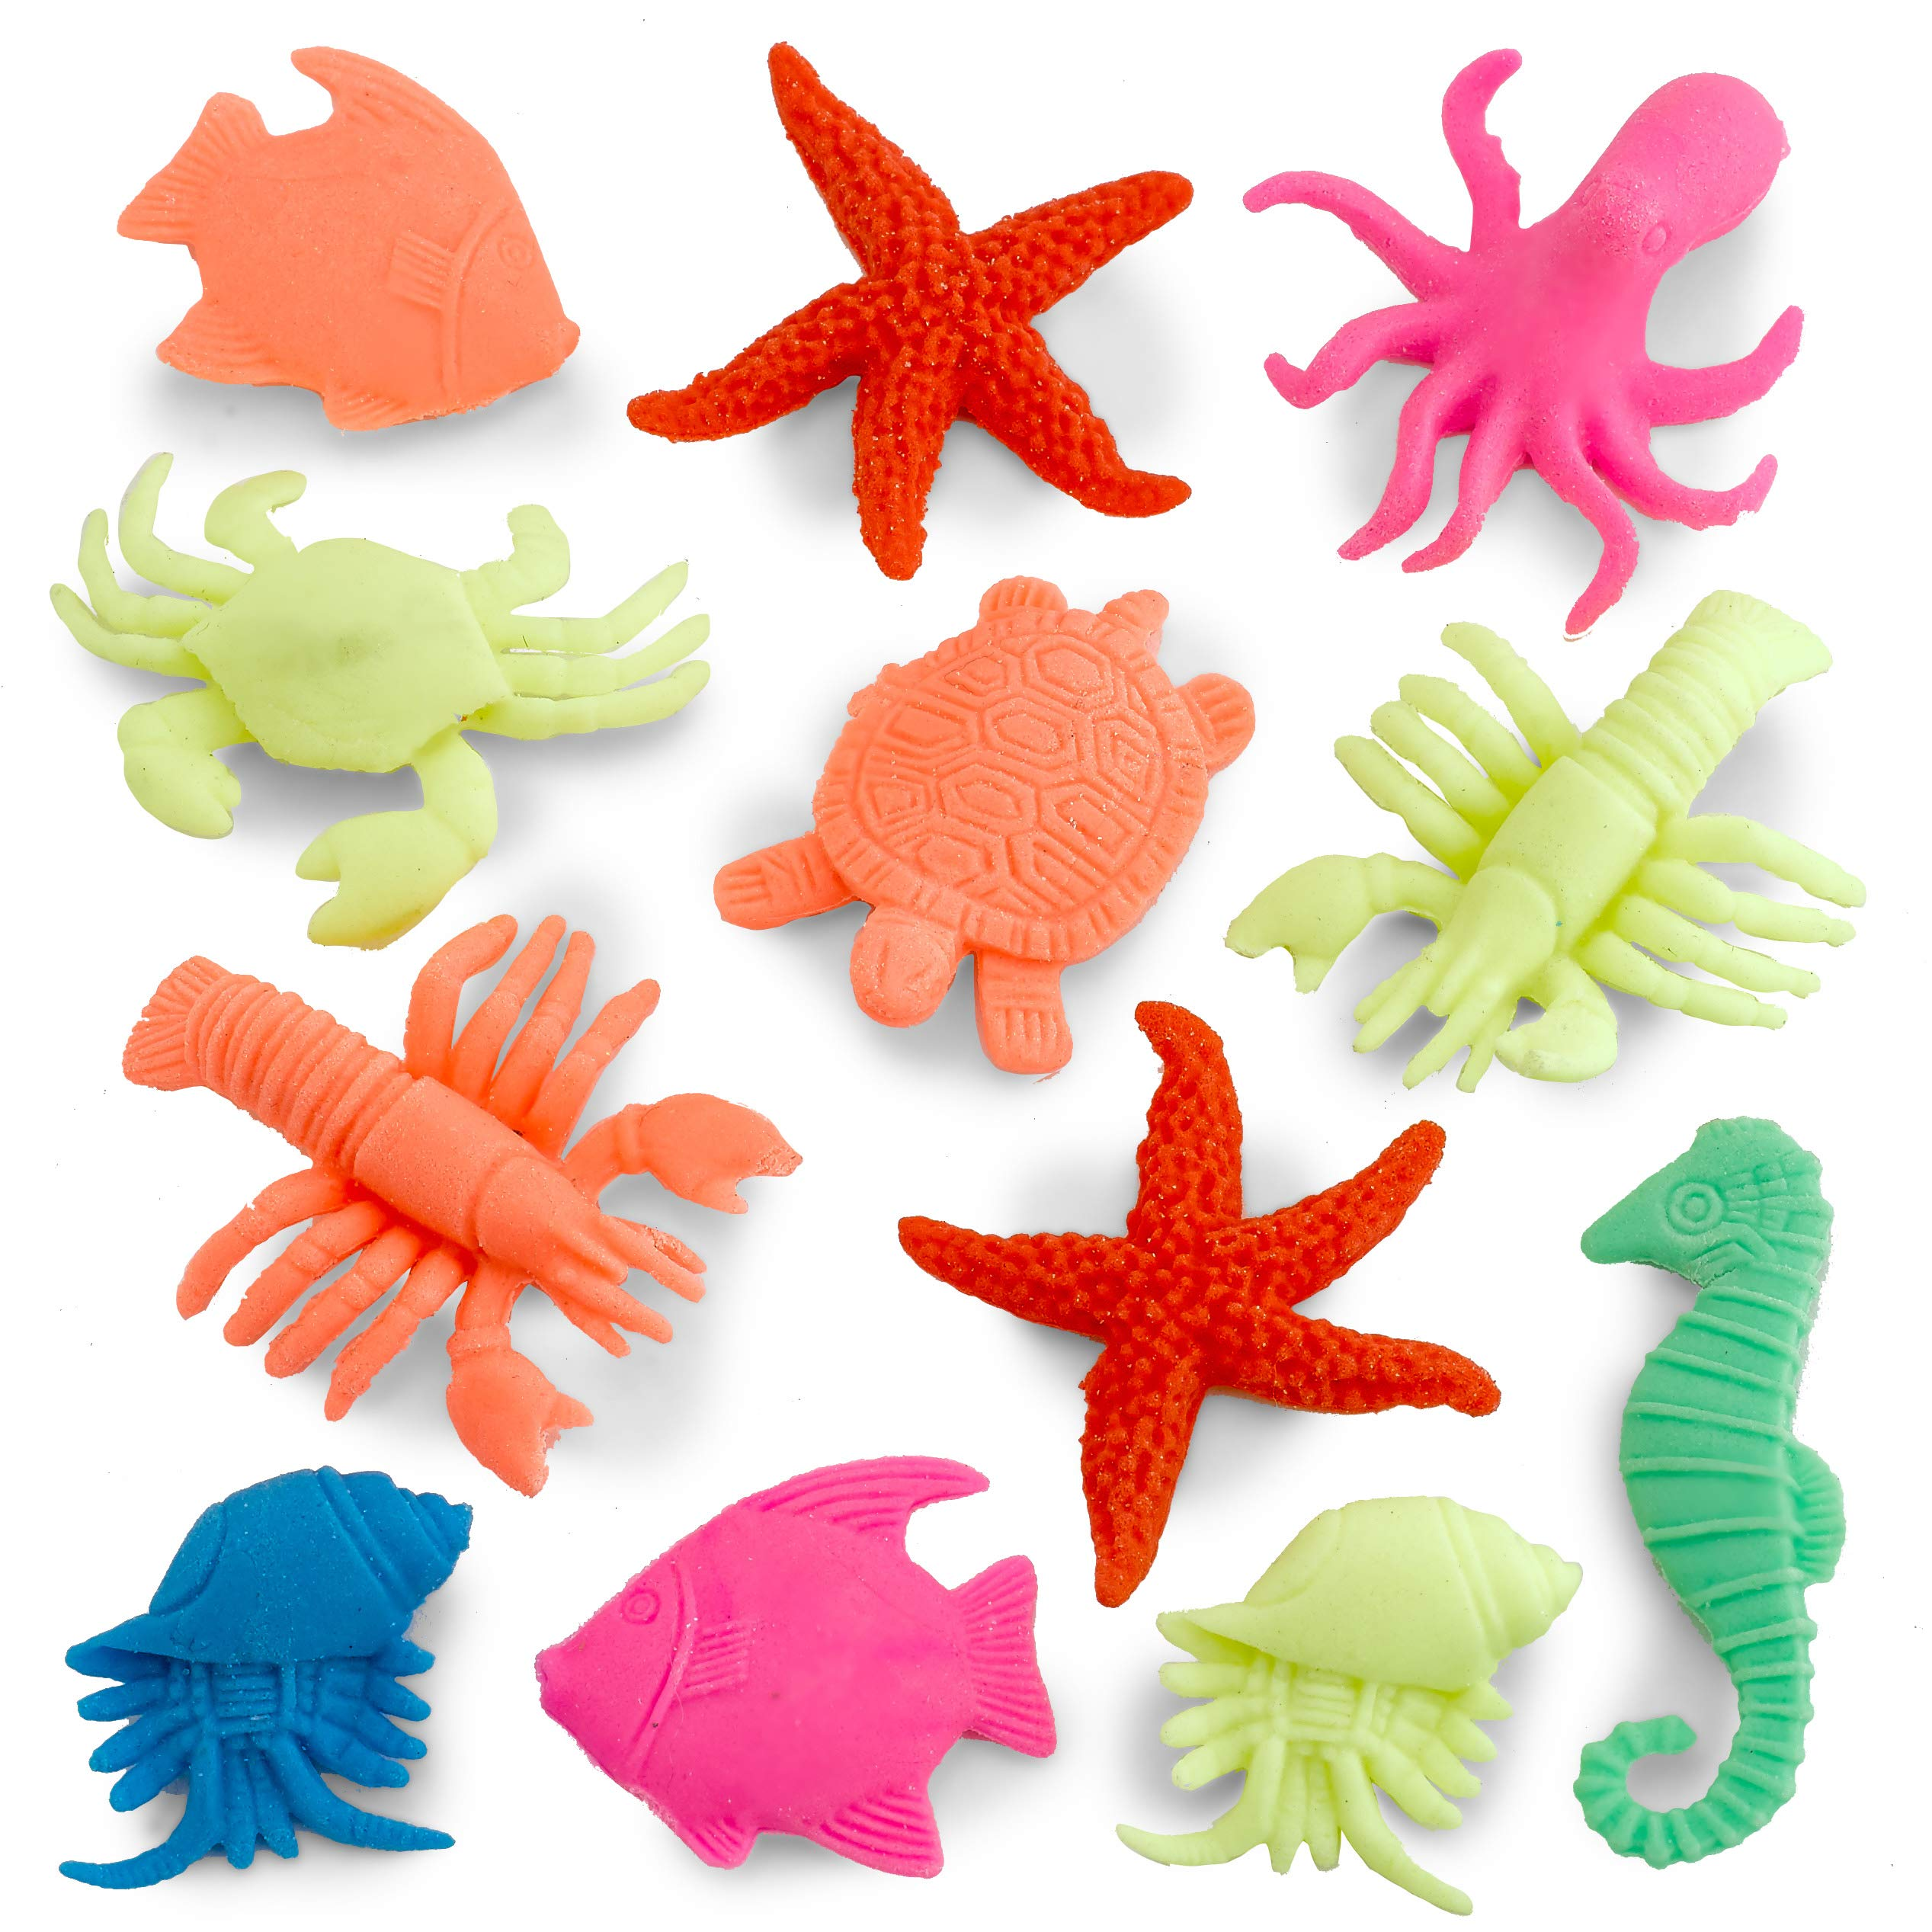 Kidsco Growing Animals Sea Life - Pack of 12 Creatures Figures, 1.25'' to 2'', Assorted Colored Animals - Grows Like Magic in Water - Fun Toy for Kids Boys and Girls, Party Favor, Gift, Prize by Kidsco (Image #2)